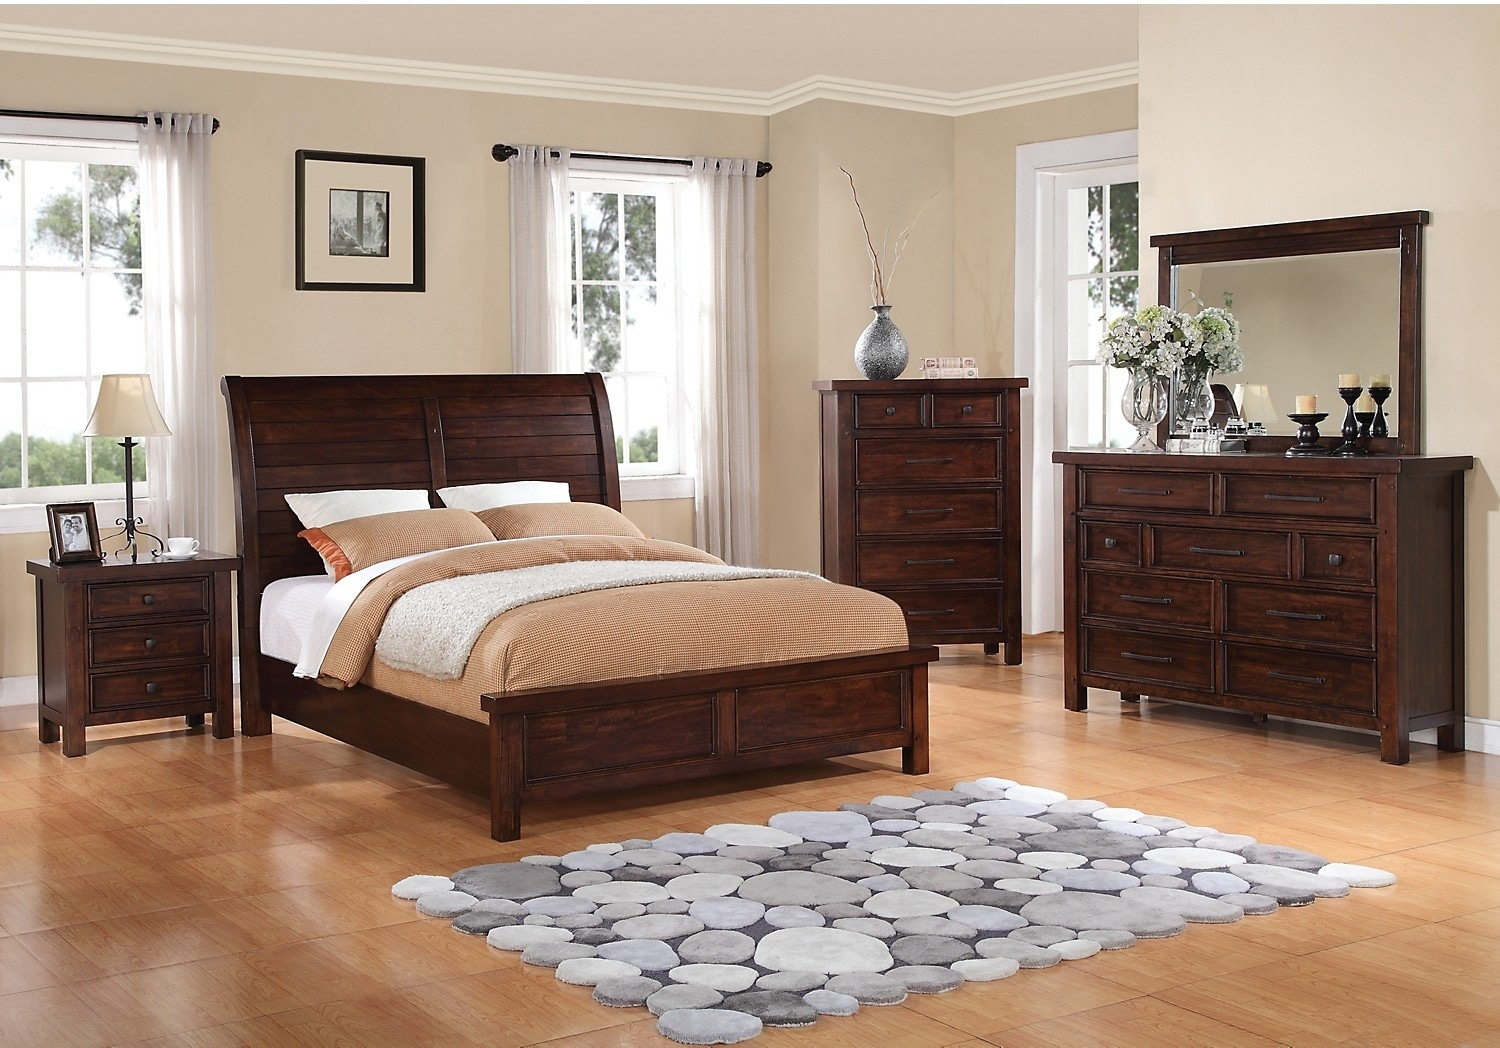 Bedroom Furniture - Sonoma 6-Piece Queen Bedroom Package - Dark Brown